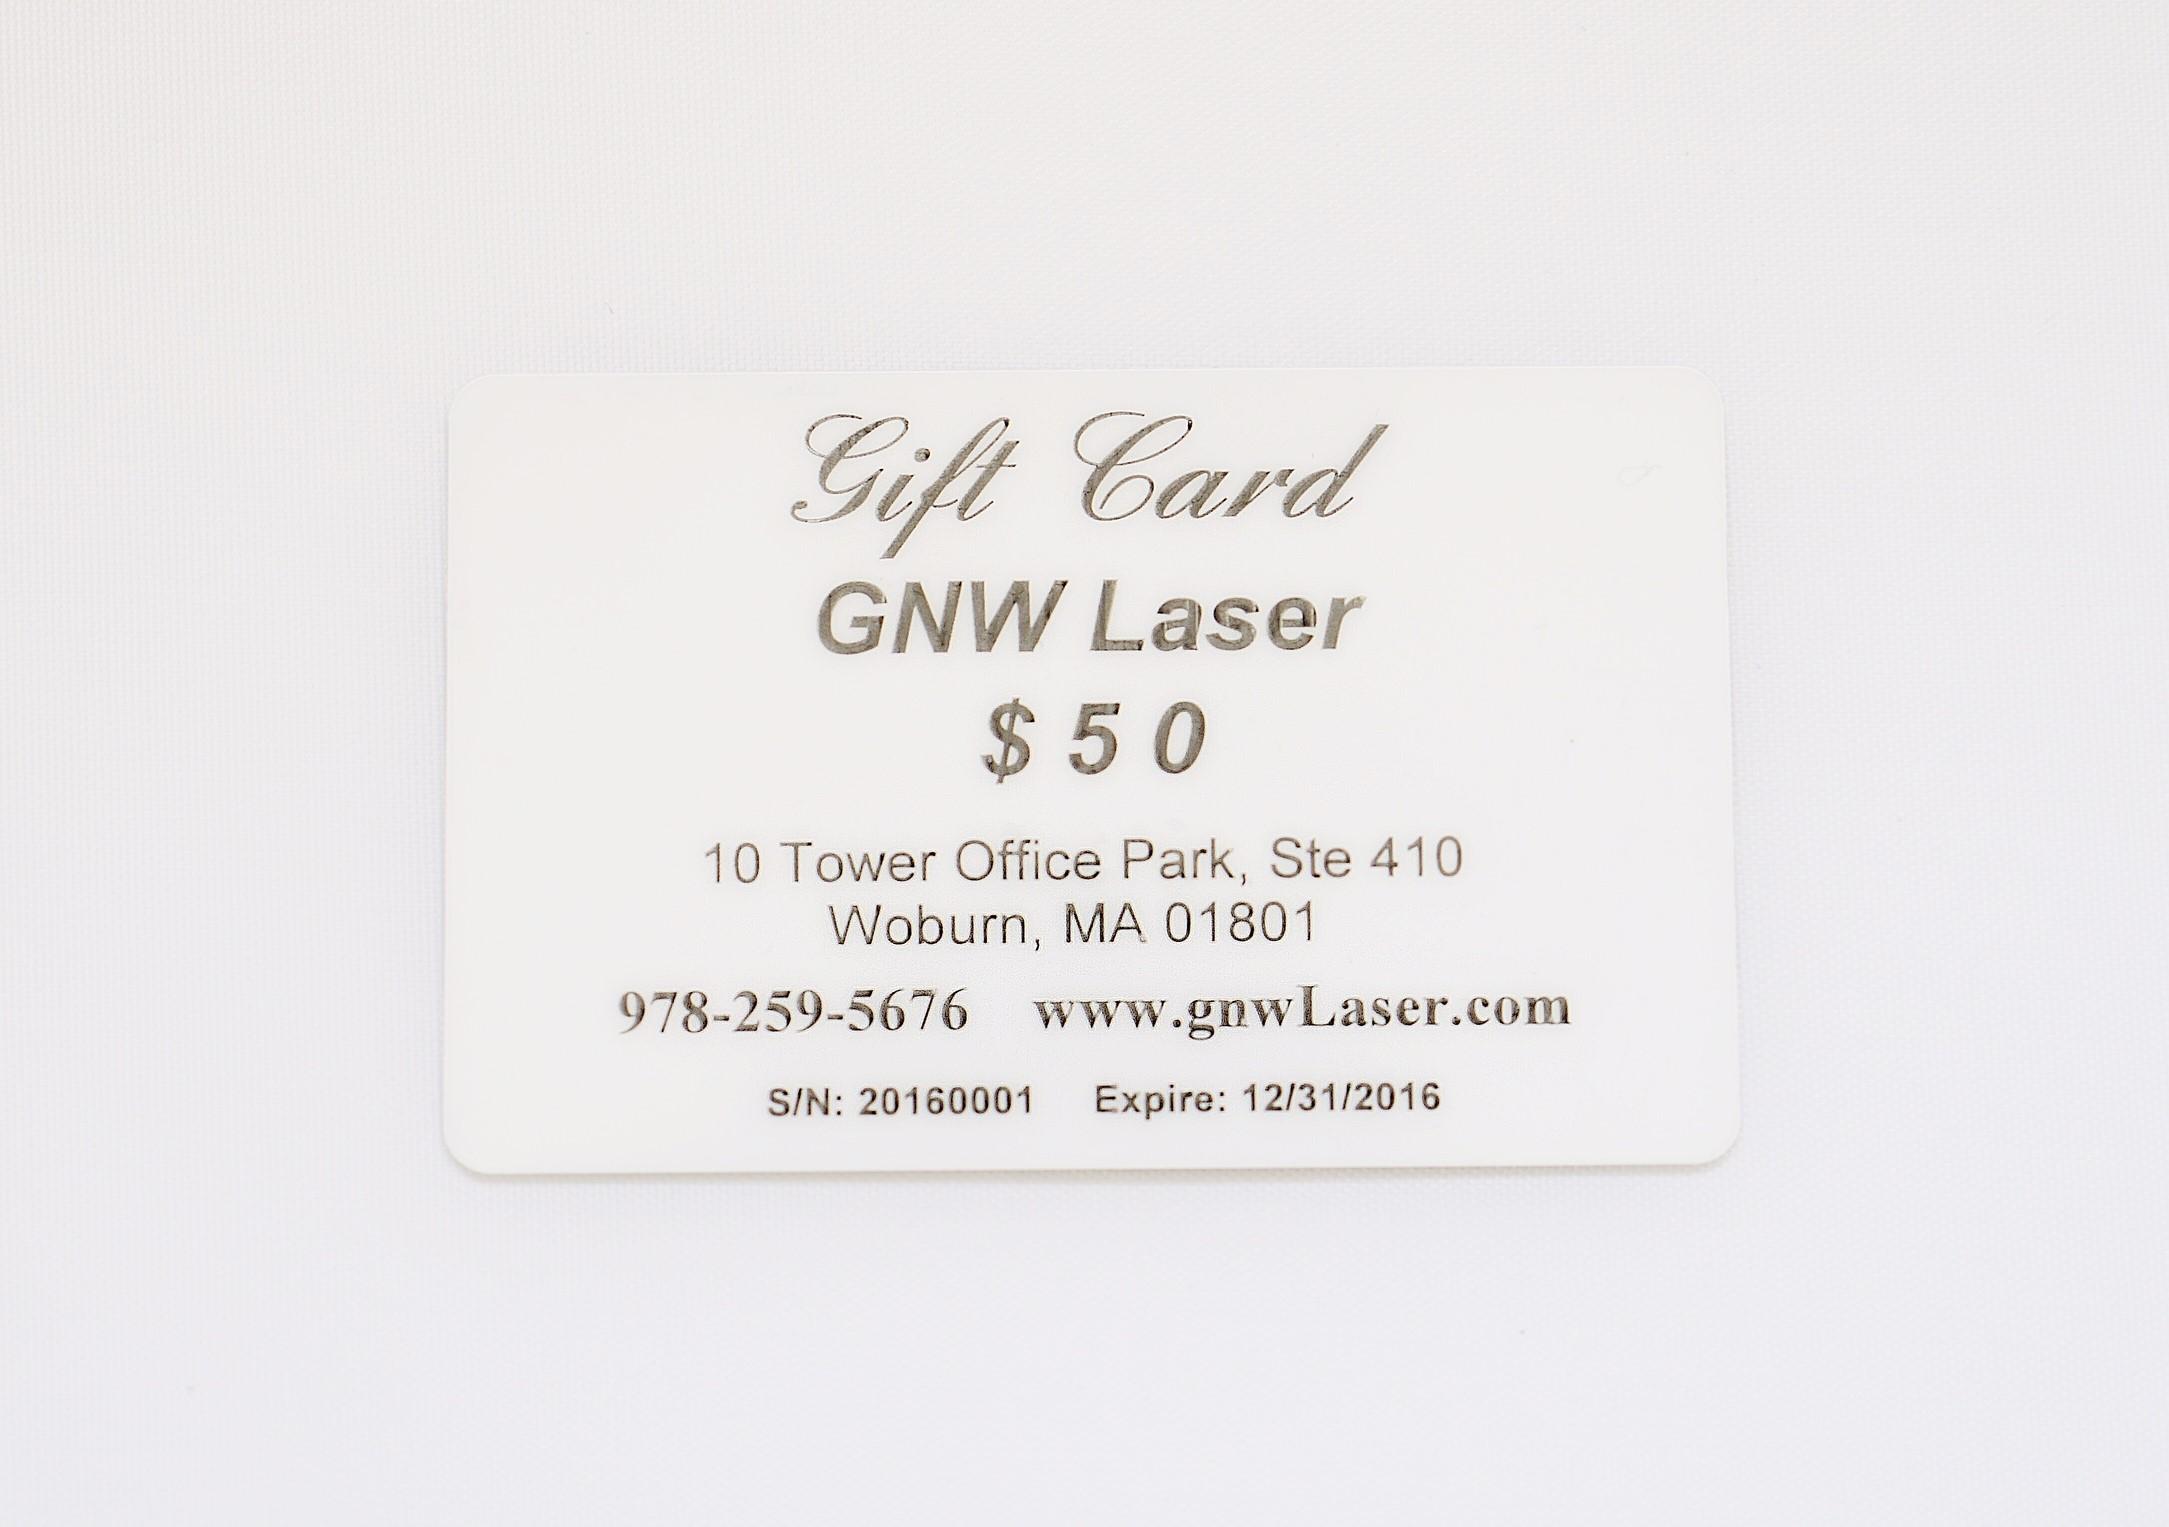 Personalized Business Card /Gift Card – GNW Laser